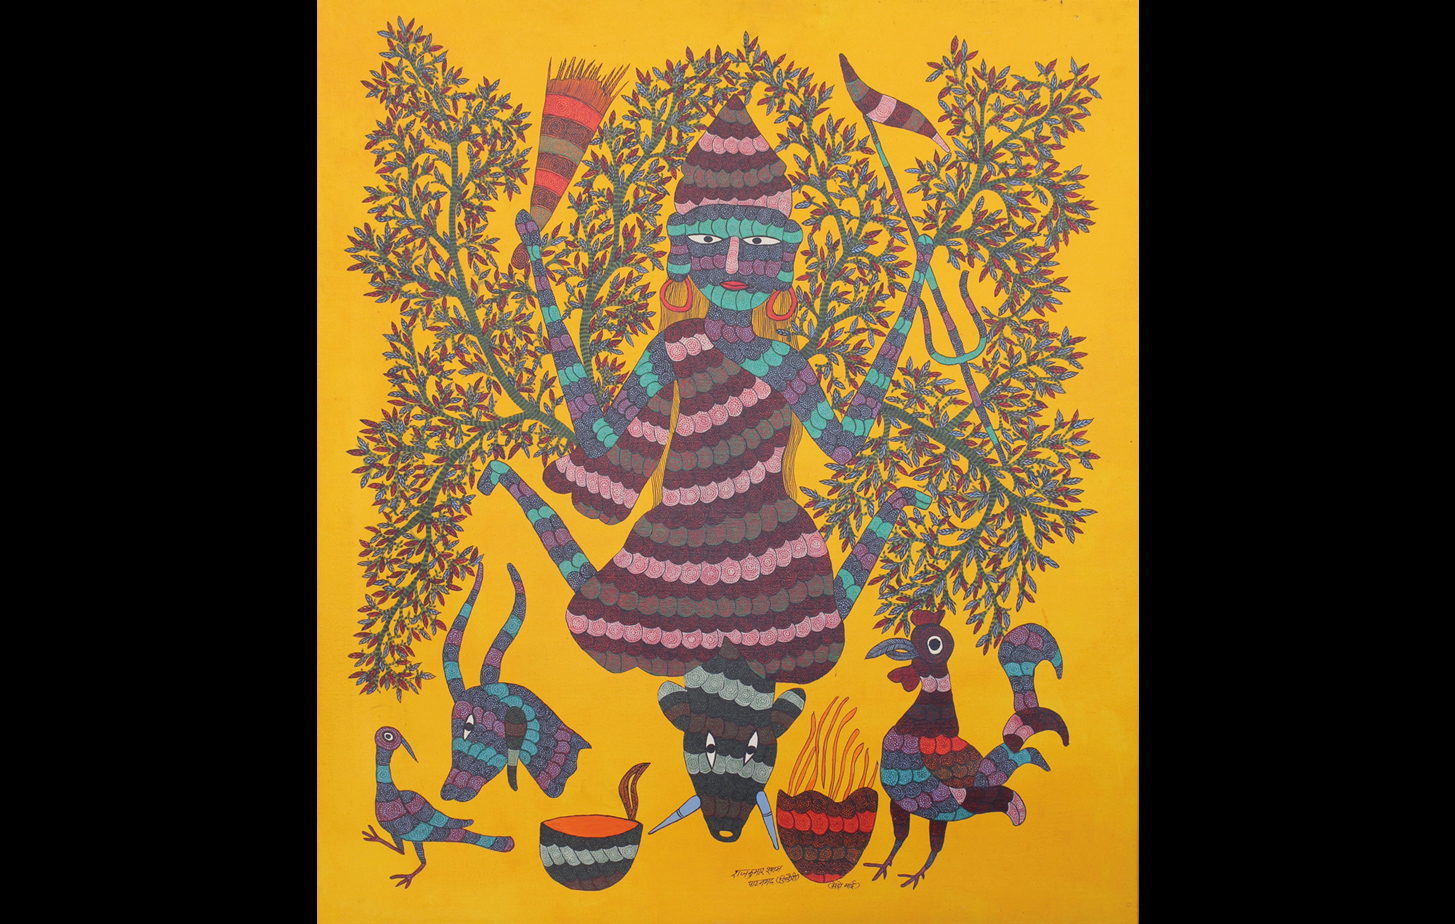 """Gond art of tribal goddess """"Maindo Mai"""" holding a broom and a trident, sitting on the head of a buffalo."""